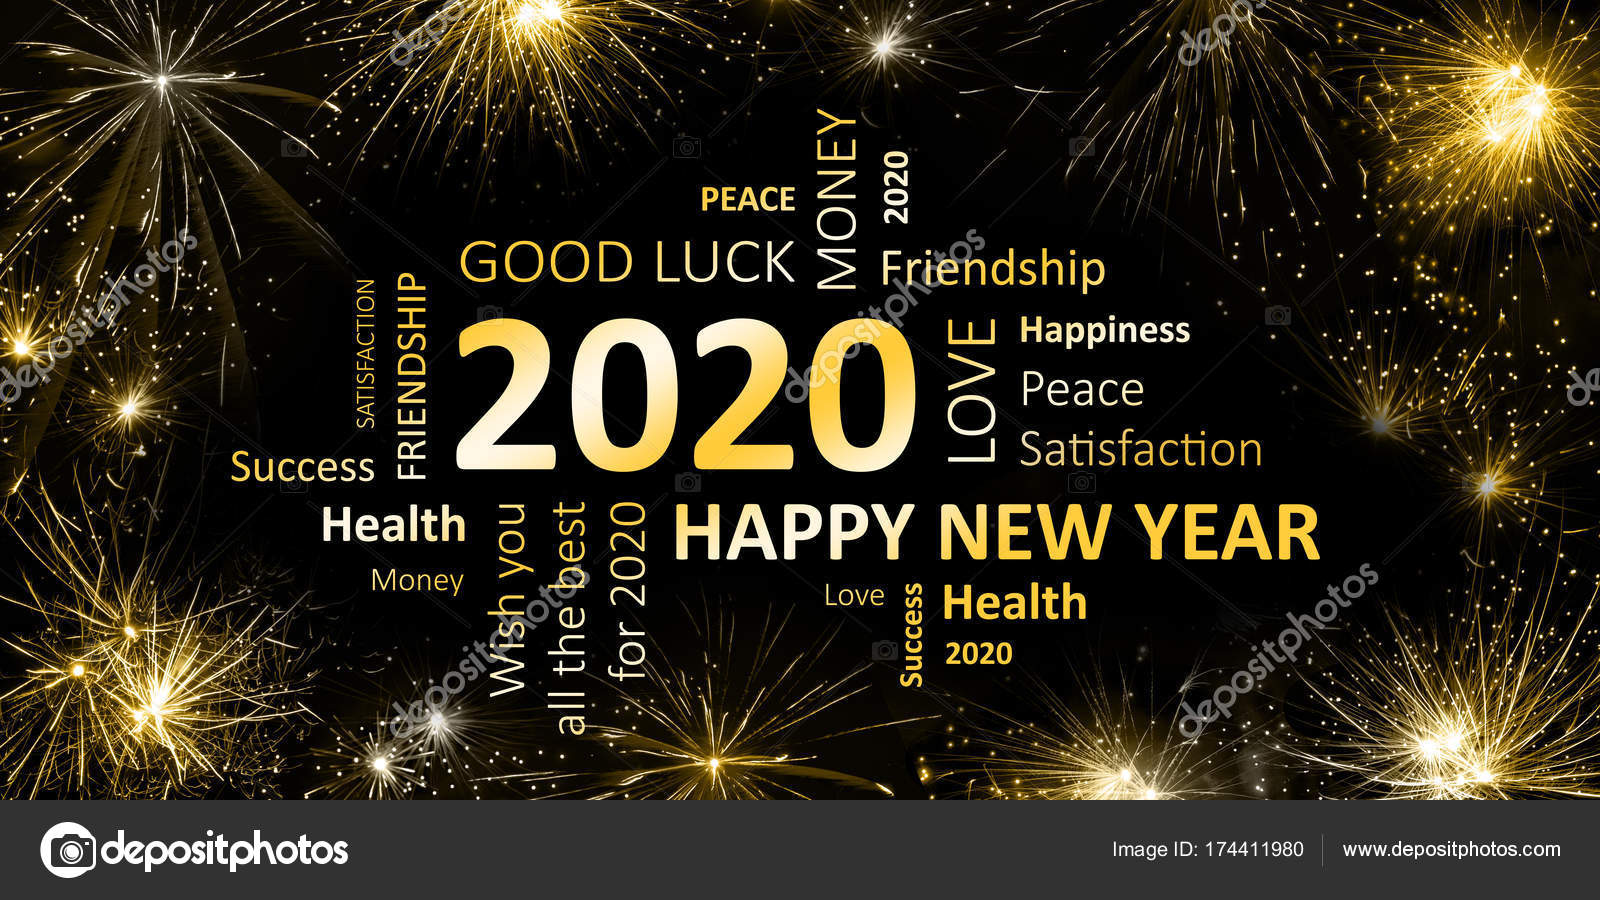 New Years Card Happy New Year 2020 And Wishes Stock Photo